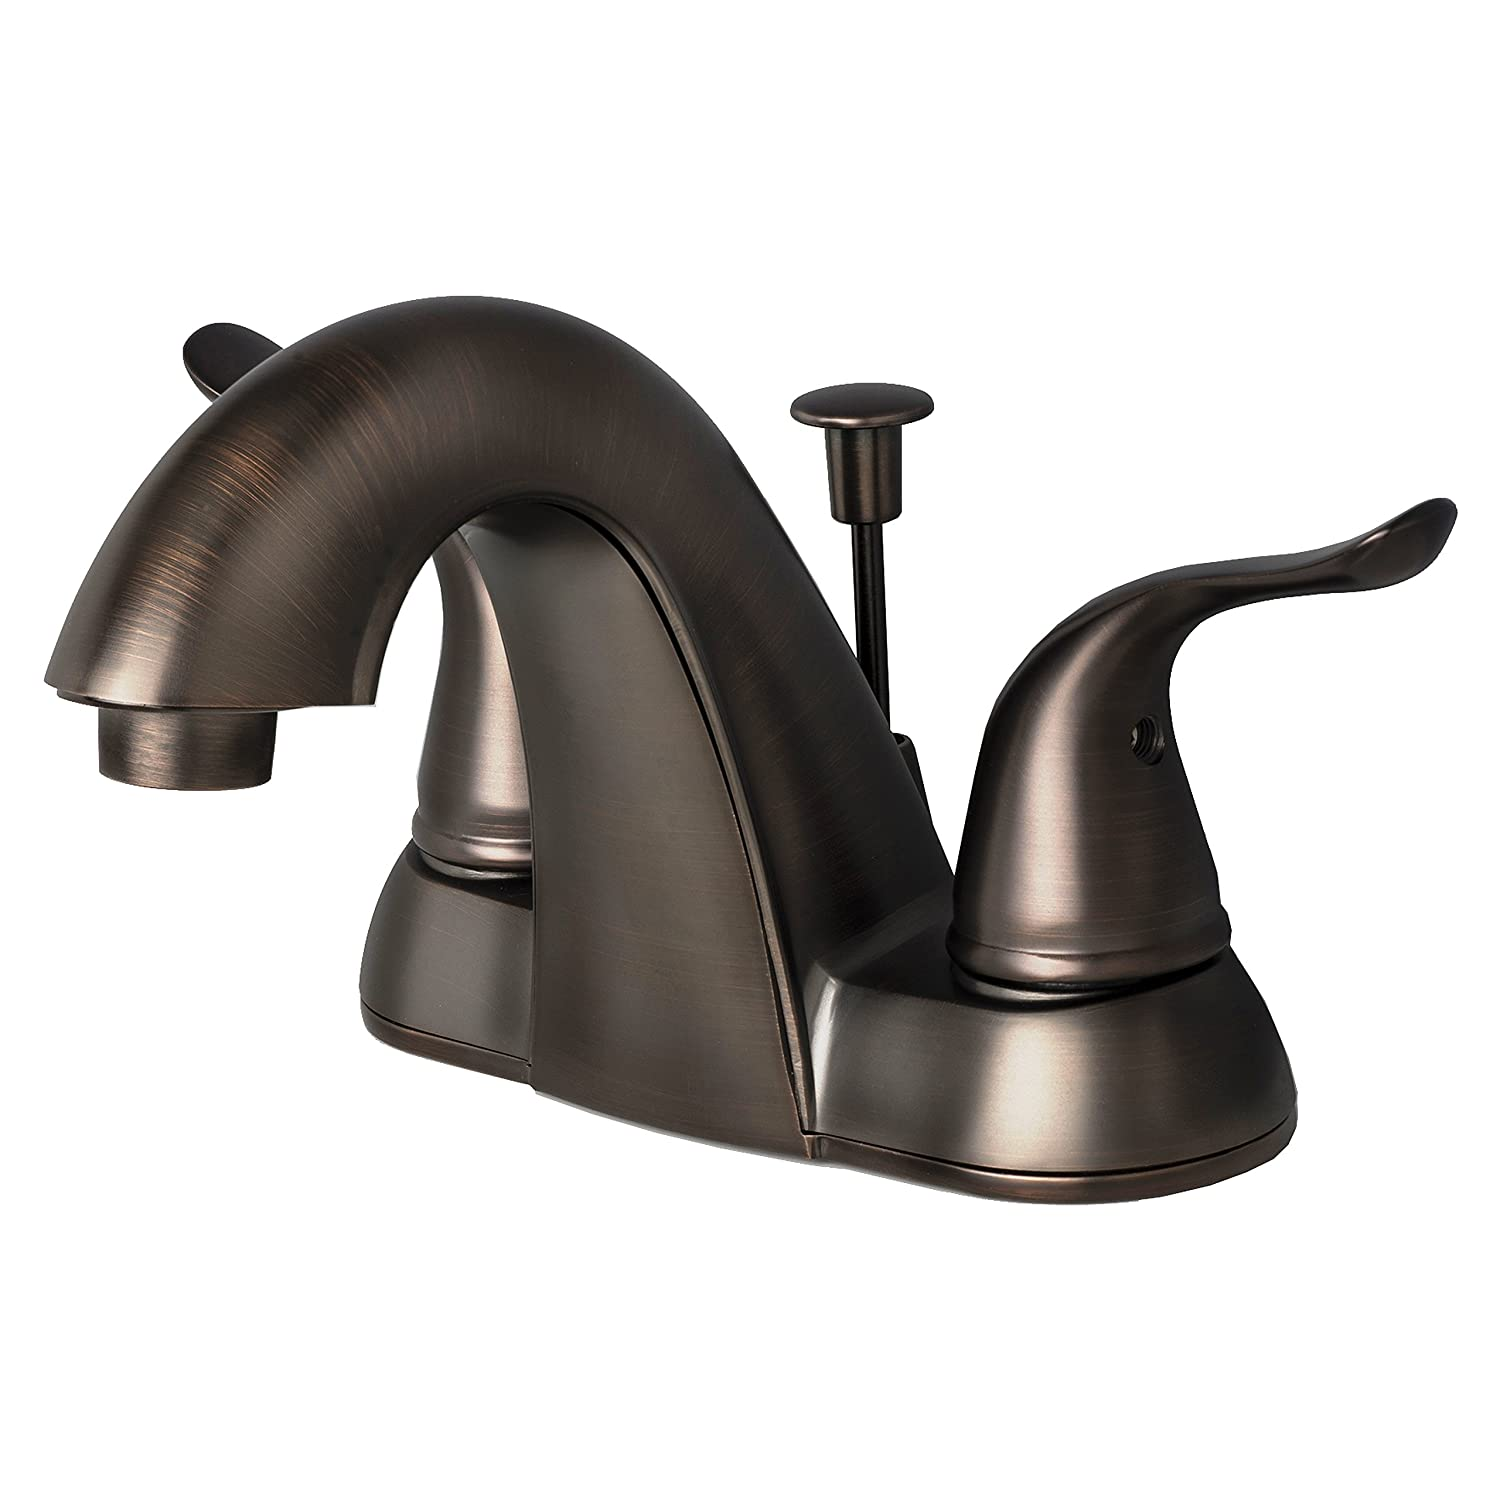 Builders Shoppe 2025bz Two Handle Centerset Lavatory Faucet With Pop Up Drain Brushed Bronze